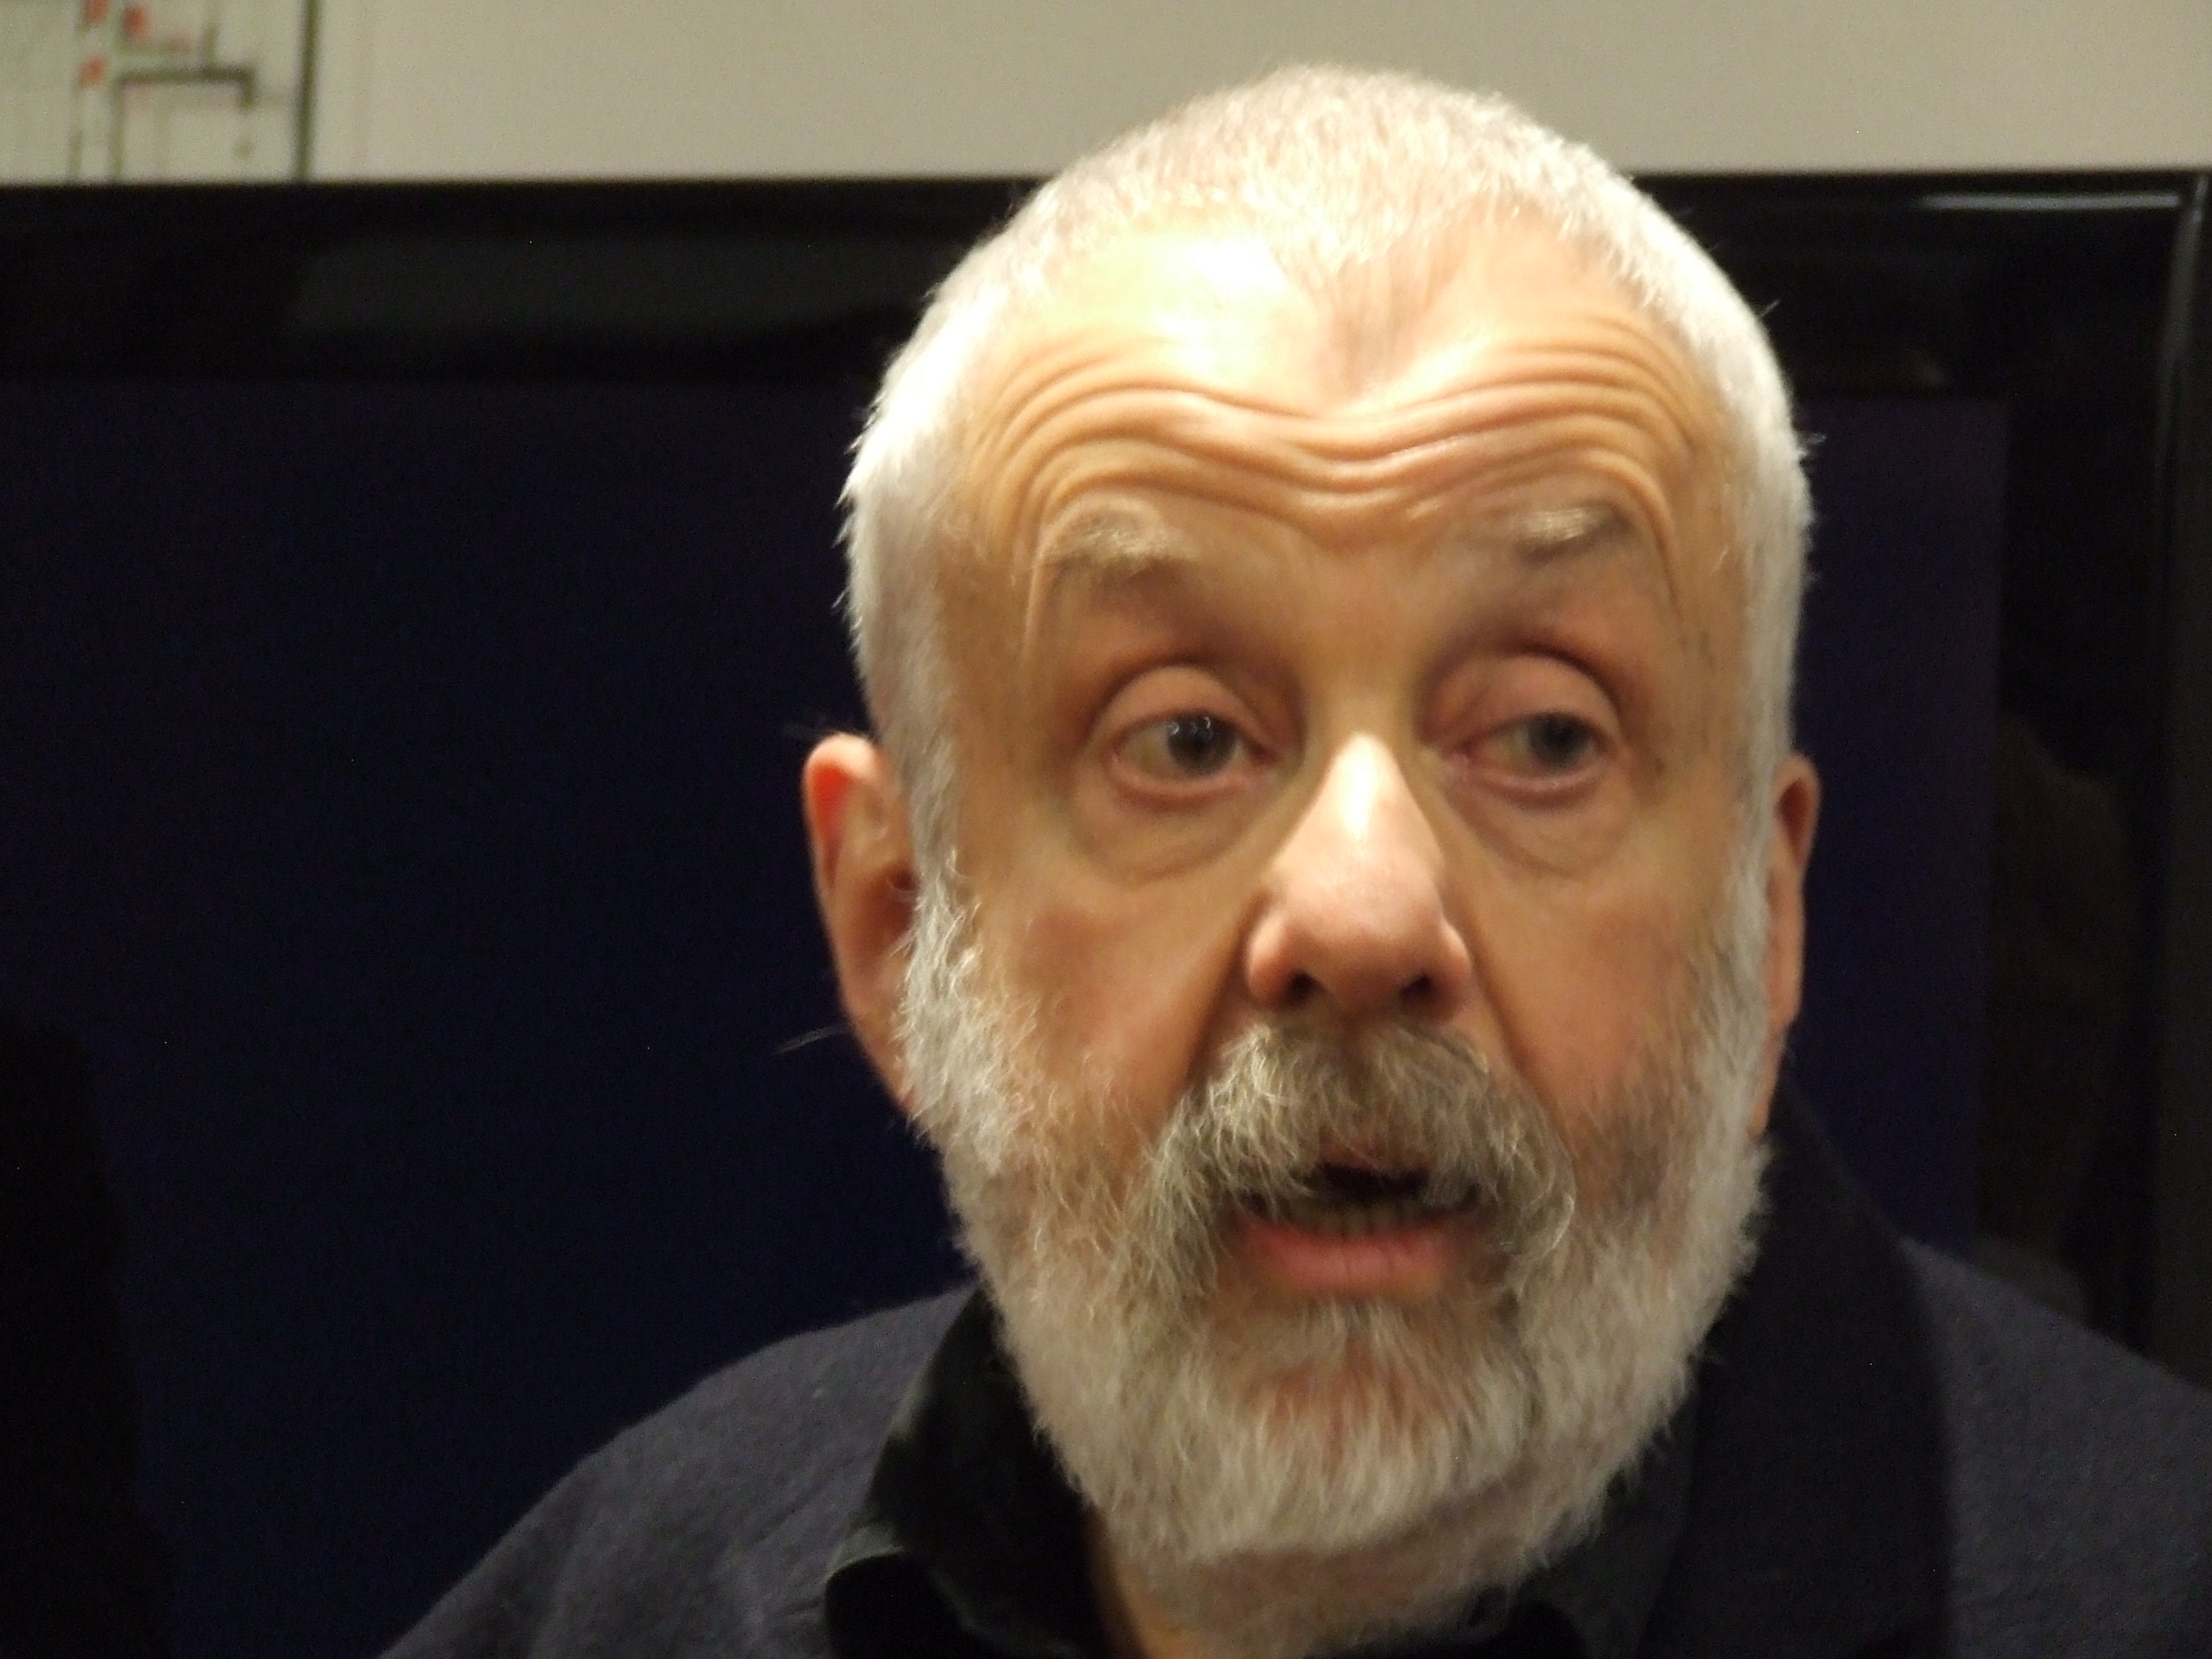 mike leigh wikimike leigh criterion, mike leigh wiki, mike leigh movies, mike leigh gif, mike leigh ken loach, mike leigh method, mike leigh interview, mike leigh birthday, mike leigh best films, mike leigh biography, mike leigh unutulmaz filmler, mike leigh another year, mike leigh films, mike leigh imdb, mike leigh turner, mike leigh mr turner, mike leigh pirates of penzance, mike leigh filmography, mike leigh director, mike leigh high hopes